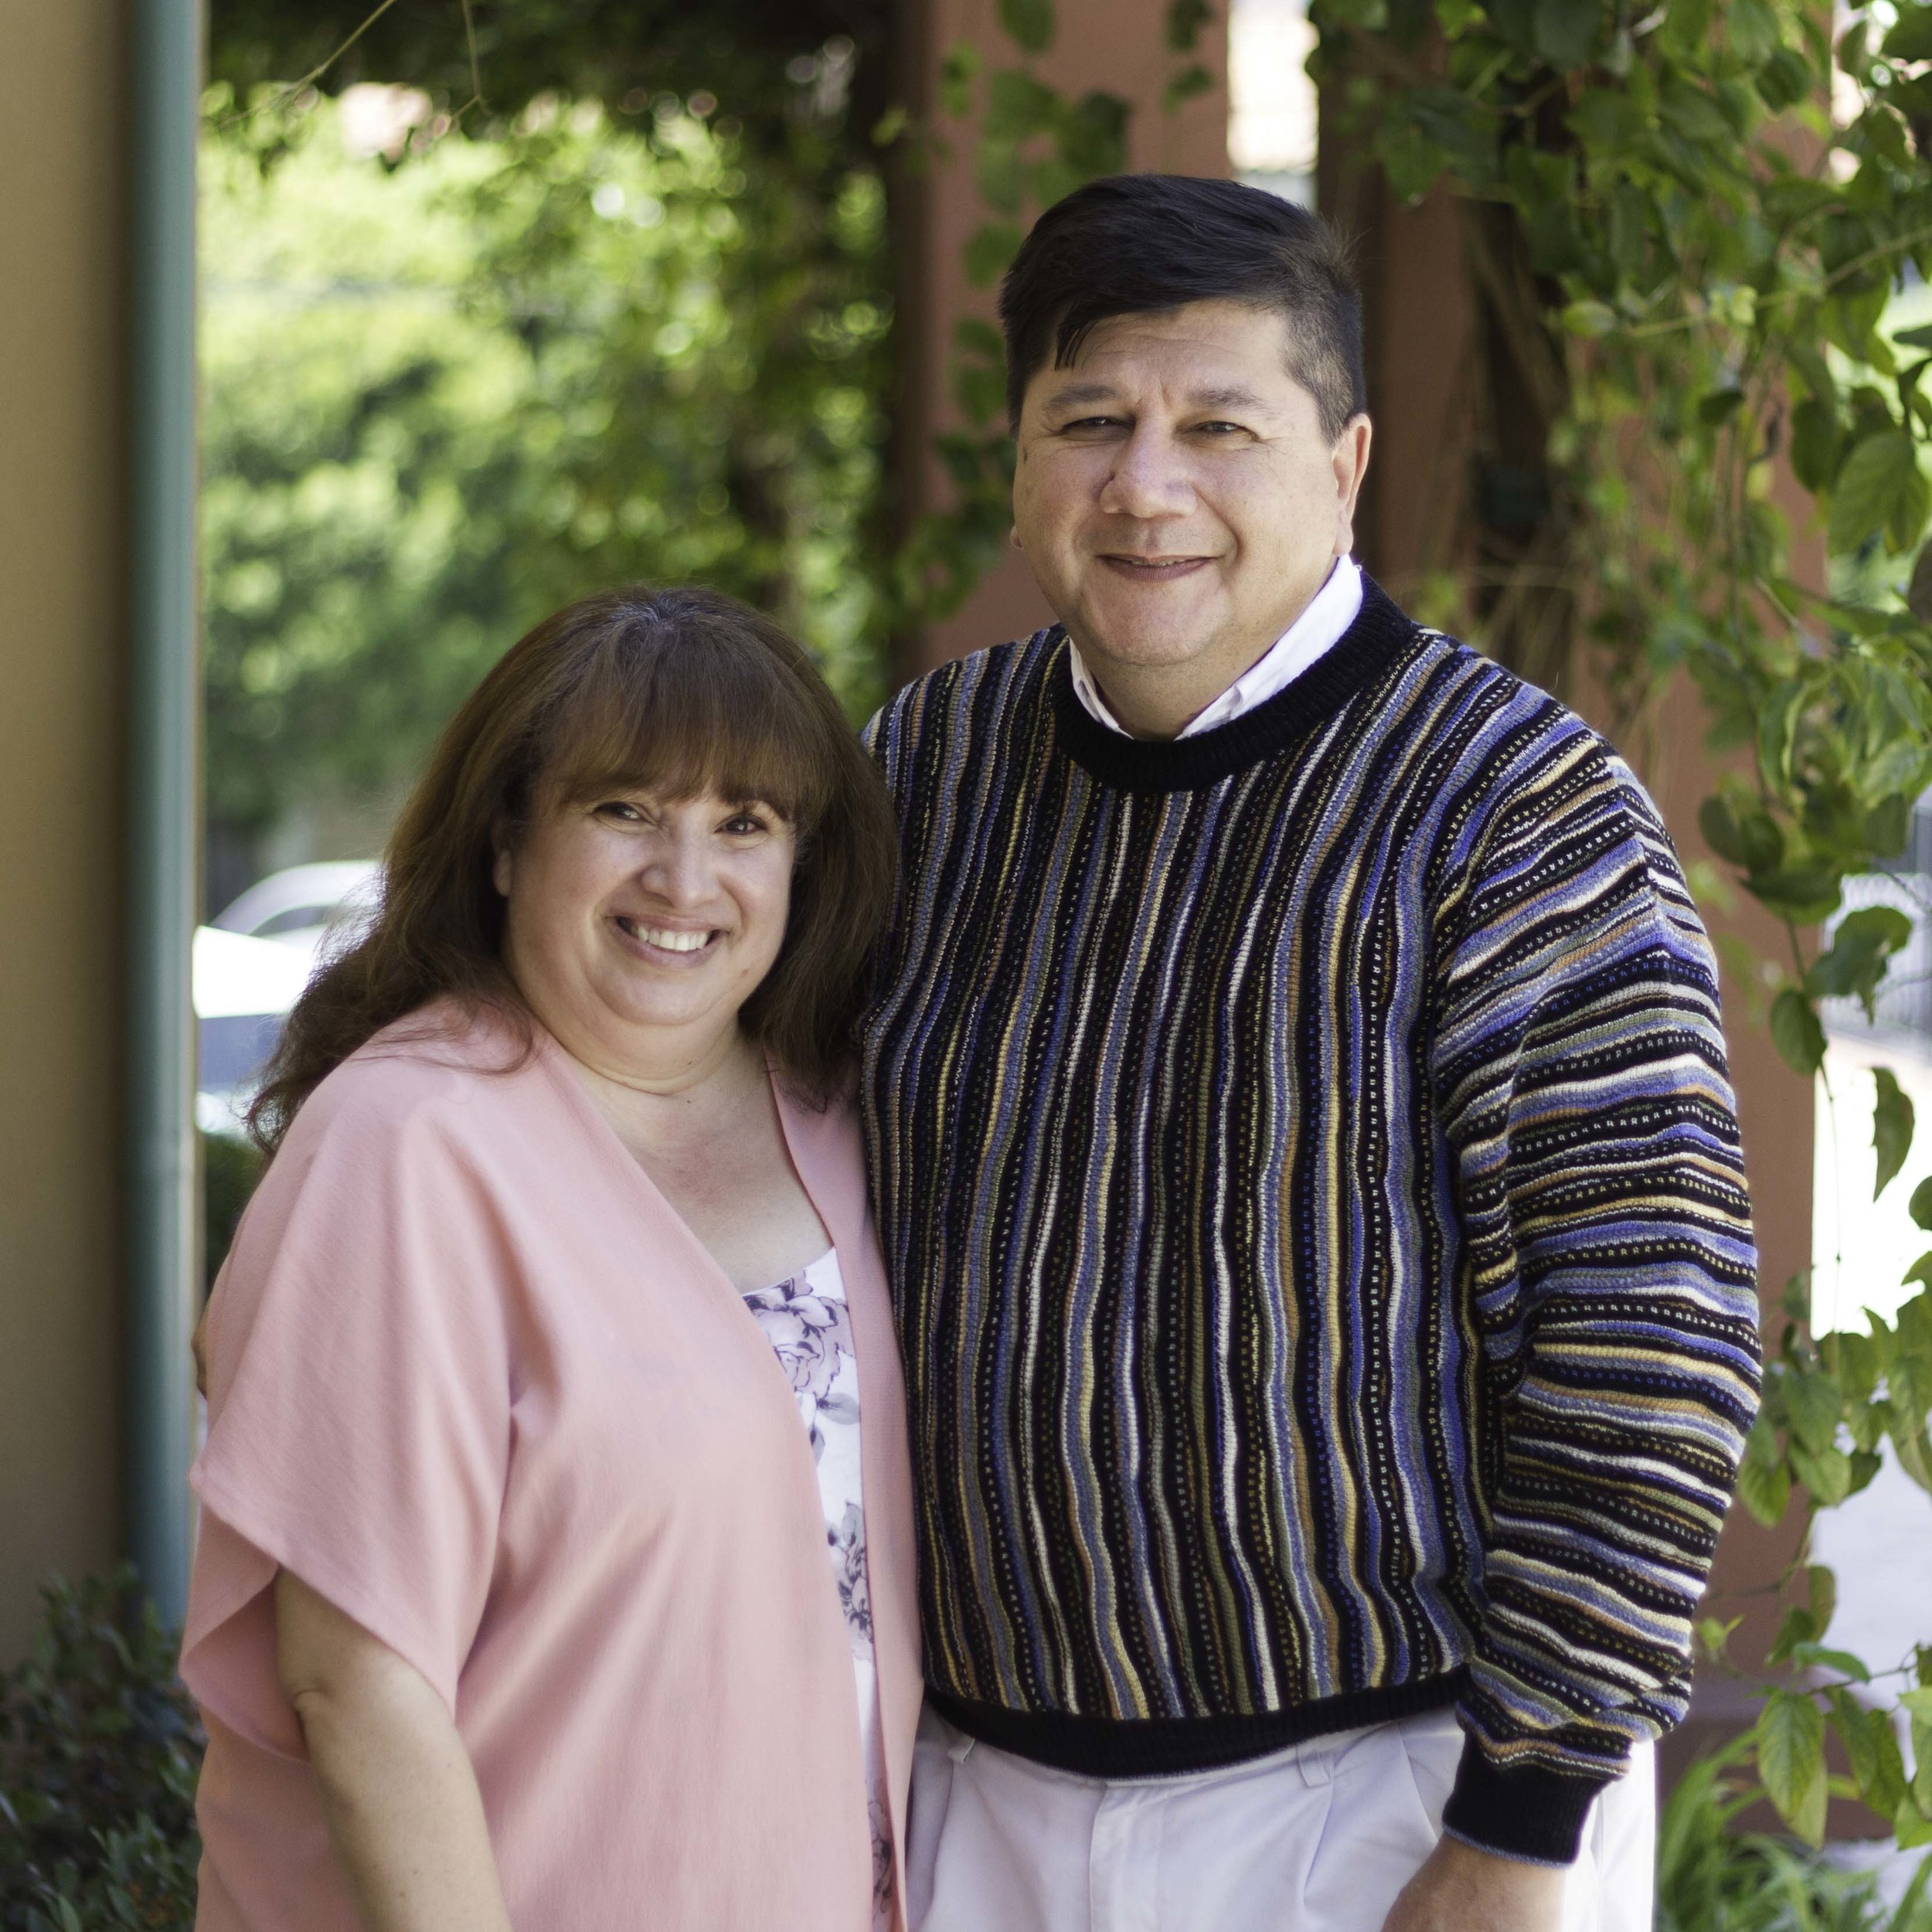 Steve & Lisa Grove    Steve and Liza who are both healthcare professionals, love serving together as ushers and greeters at CLC. As part of his role as a board member, Steve has also been instrumental in overseeing our medical emergency team.